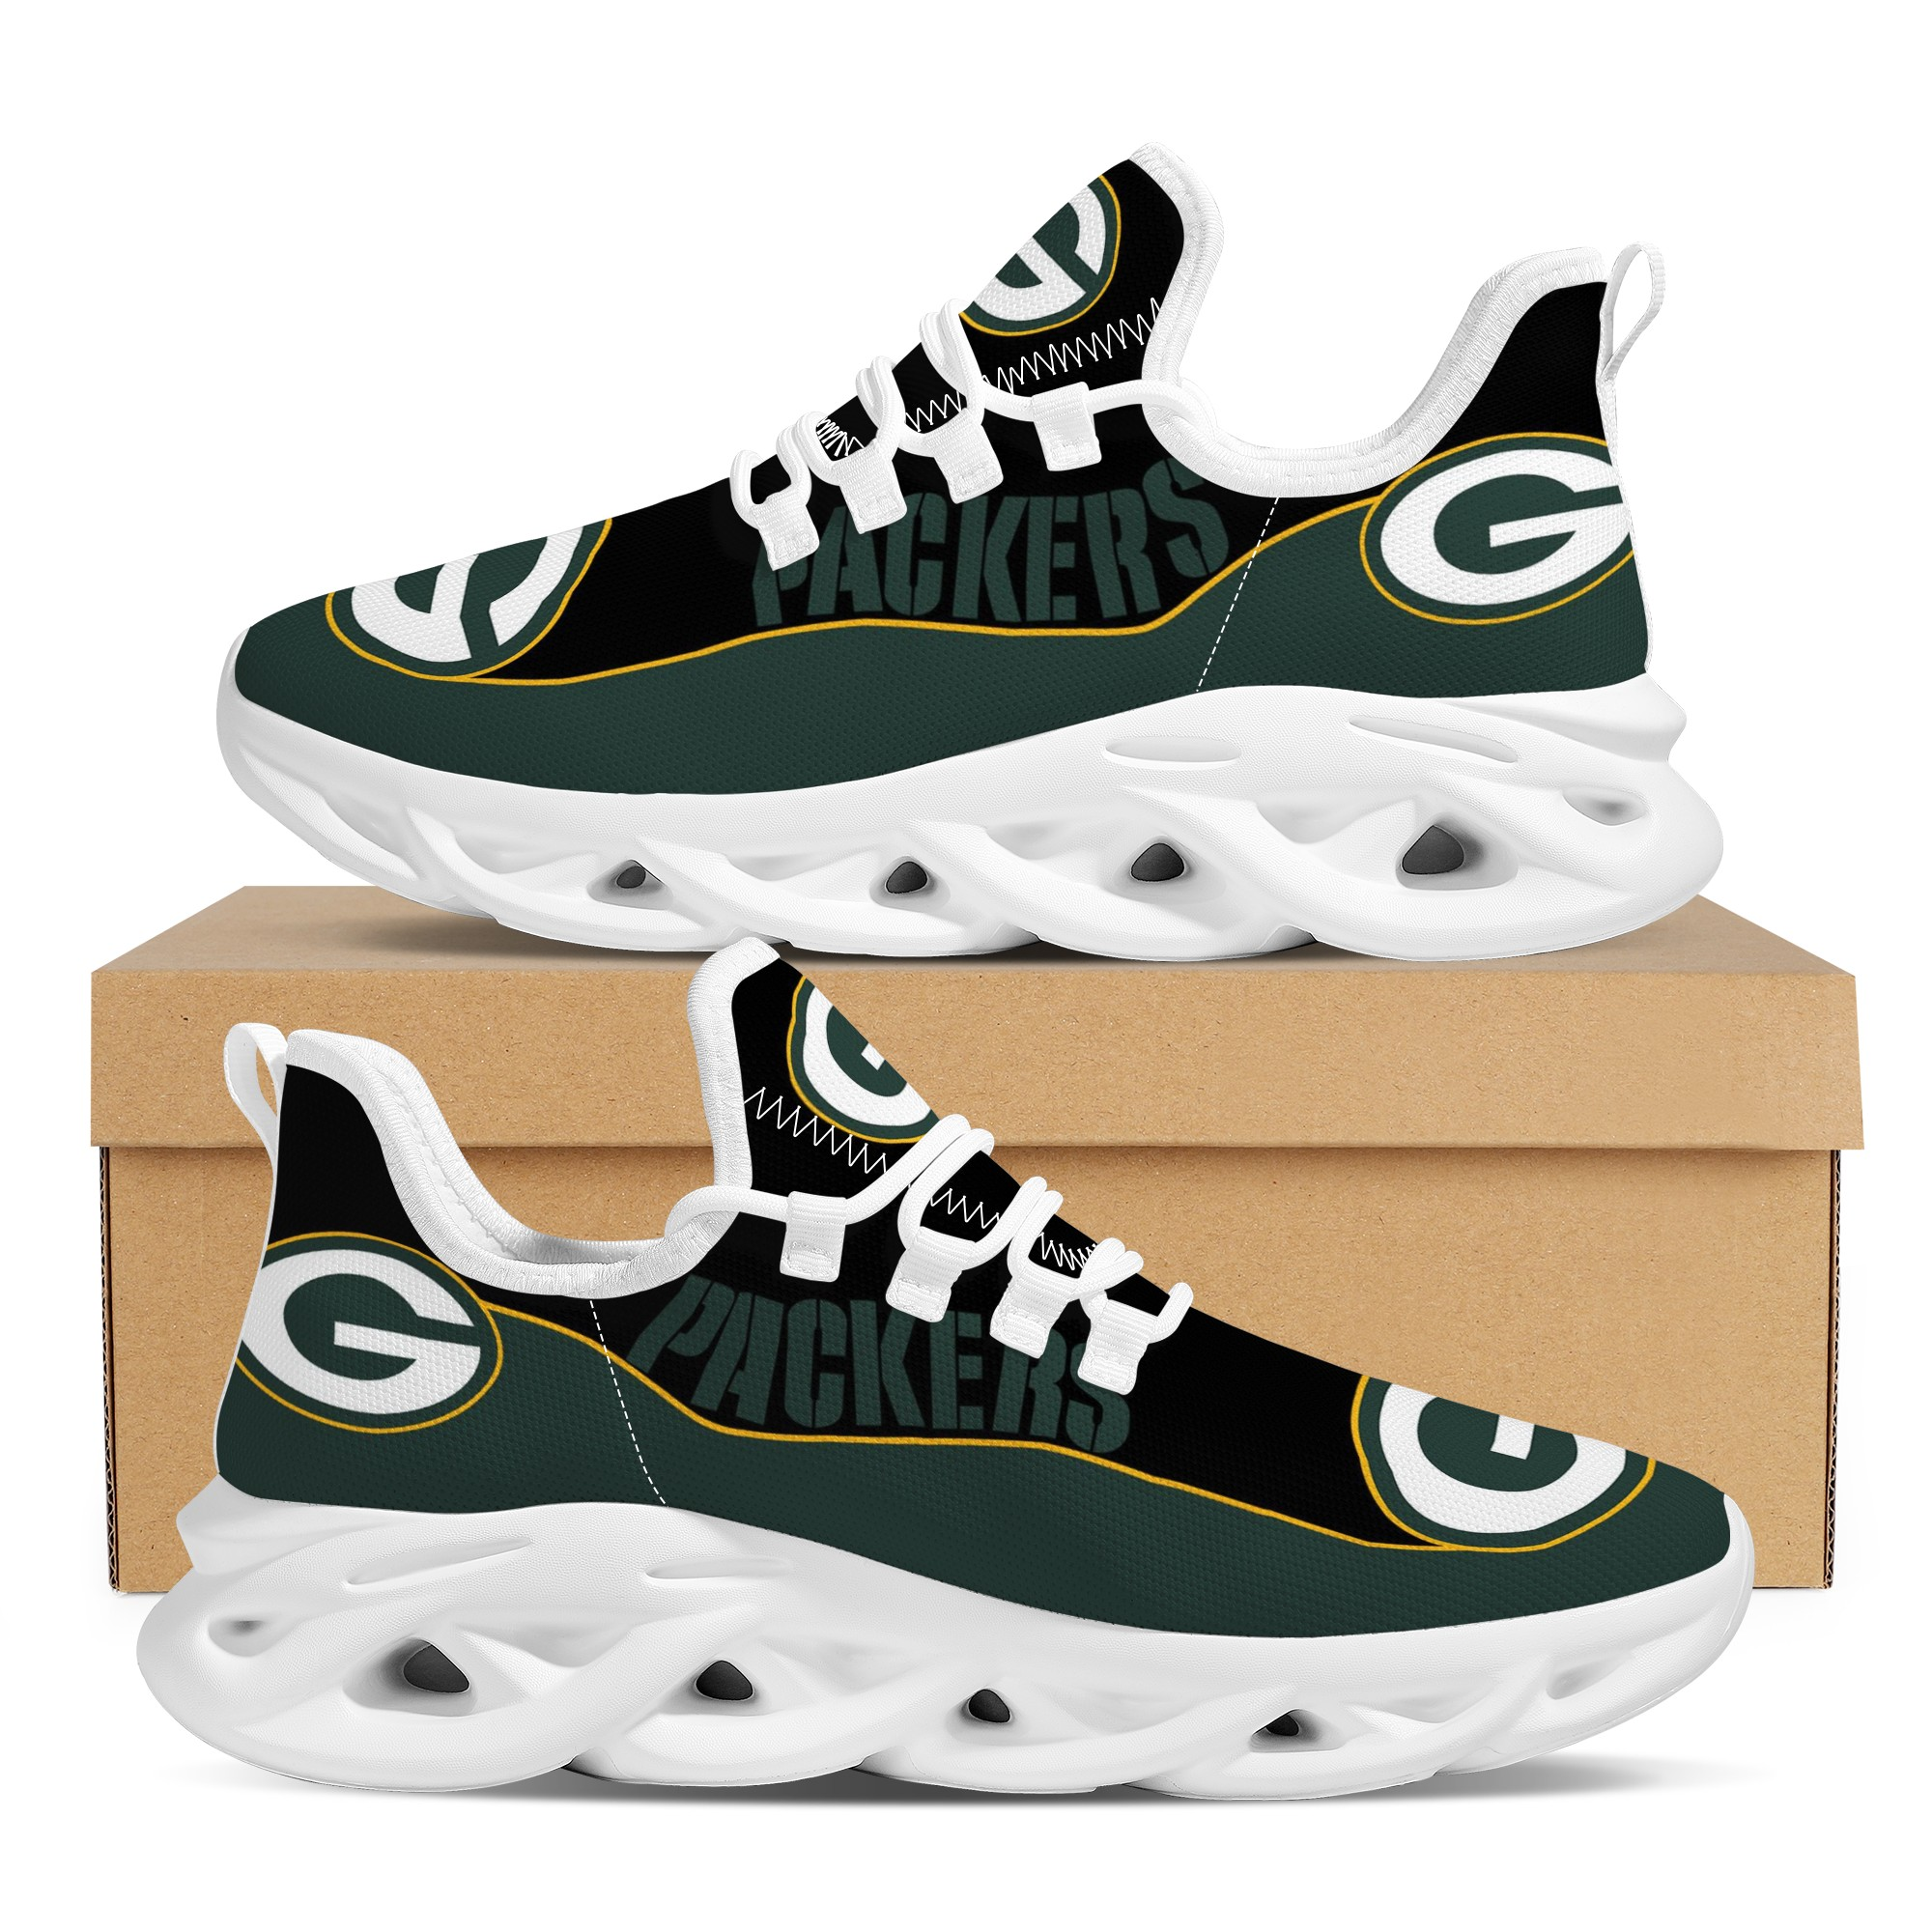 Women's Green Bay Packers Flex Control Sneakers 002